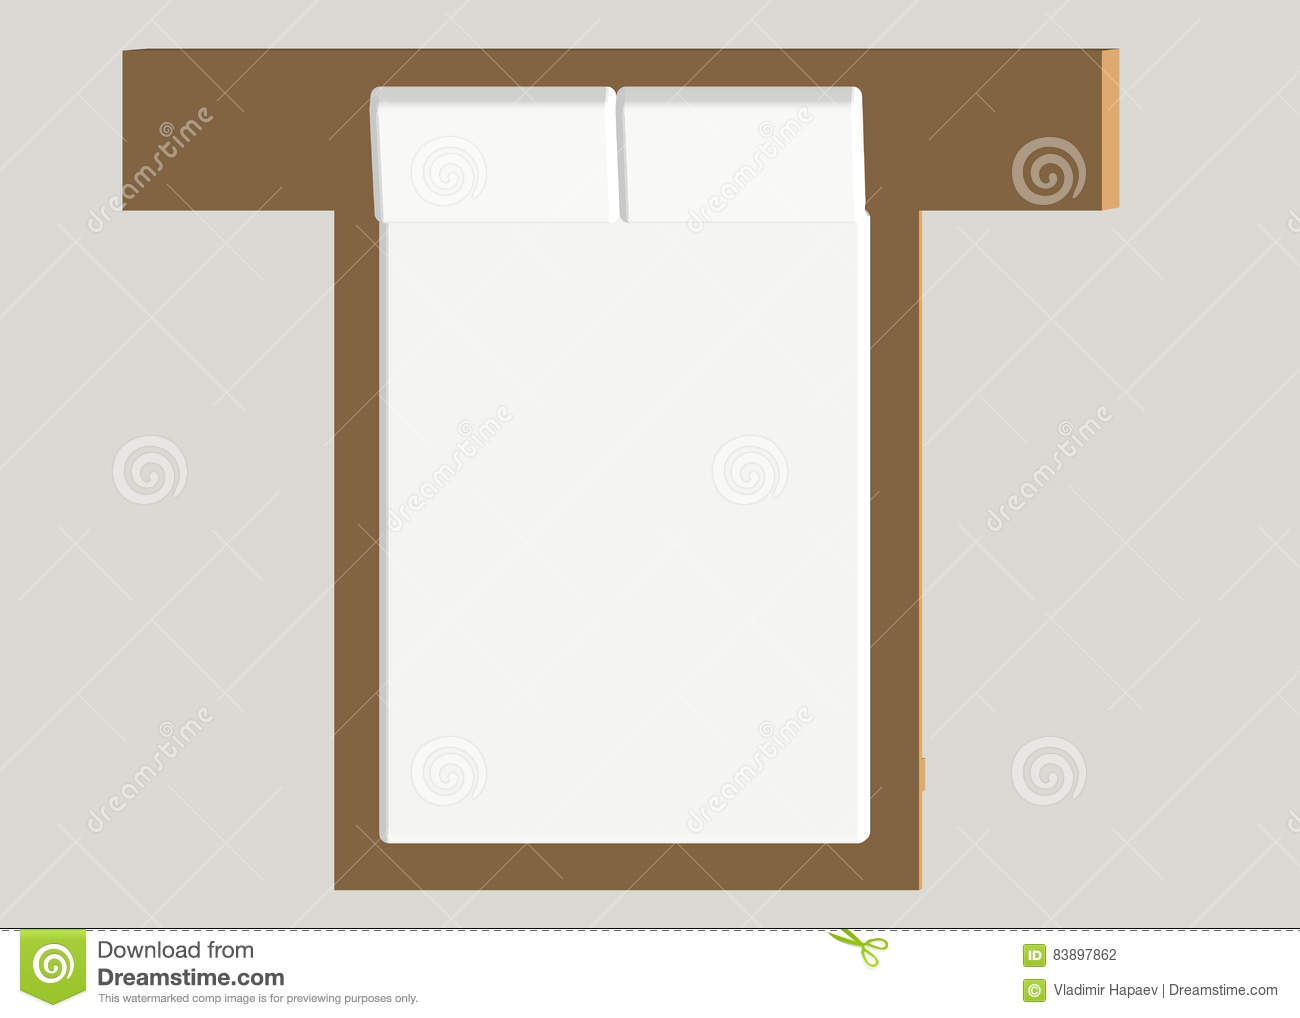 Home Furniture Bed Interior Element Bedroom Vector Illustration